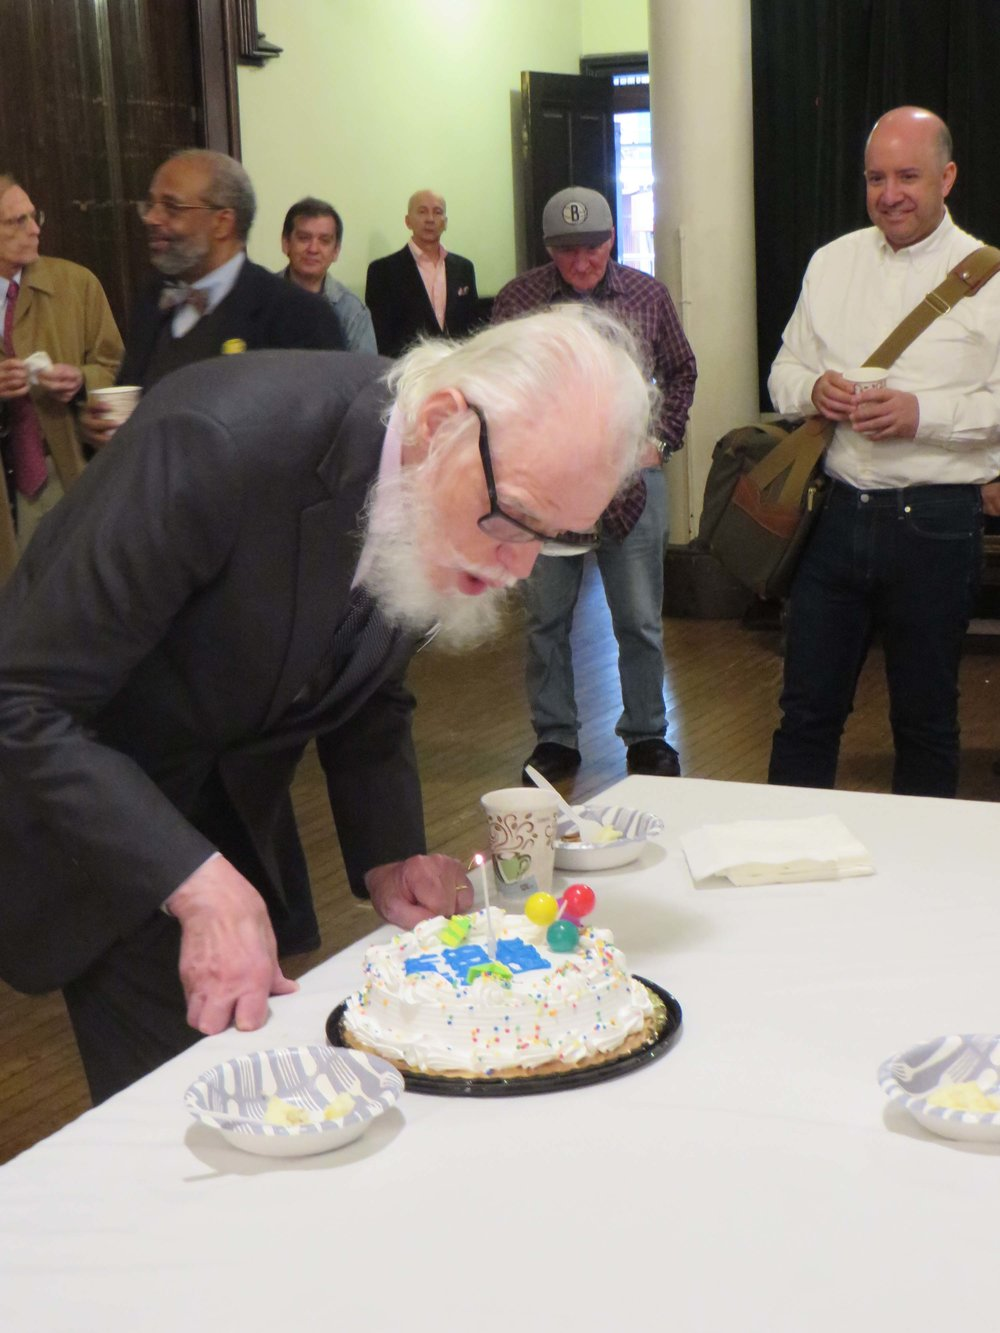 There were cakes to celebrate Hardy Geer's 85th birthday.